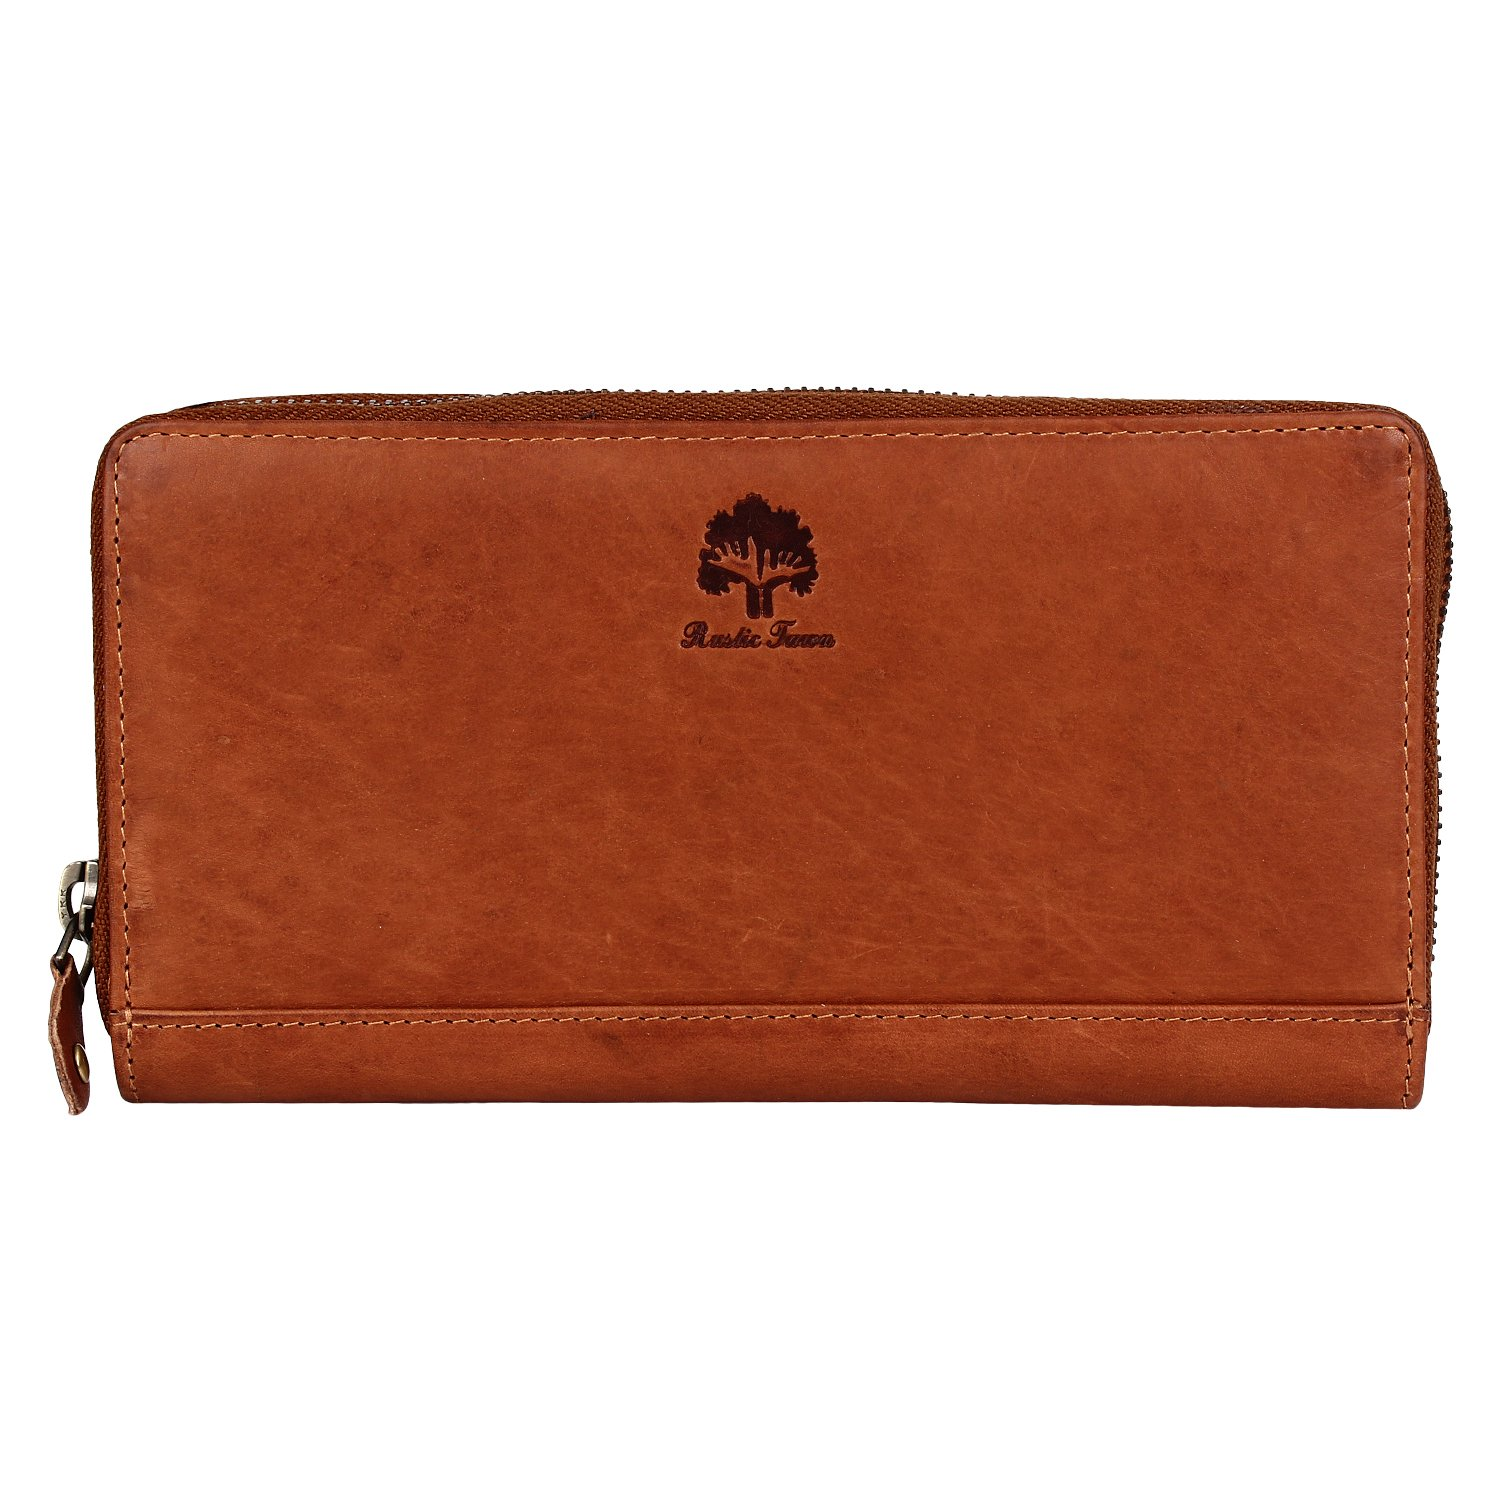 Leather Wallets for Women - RFID Blocking clutch purses for women by RusticTown